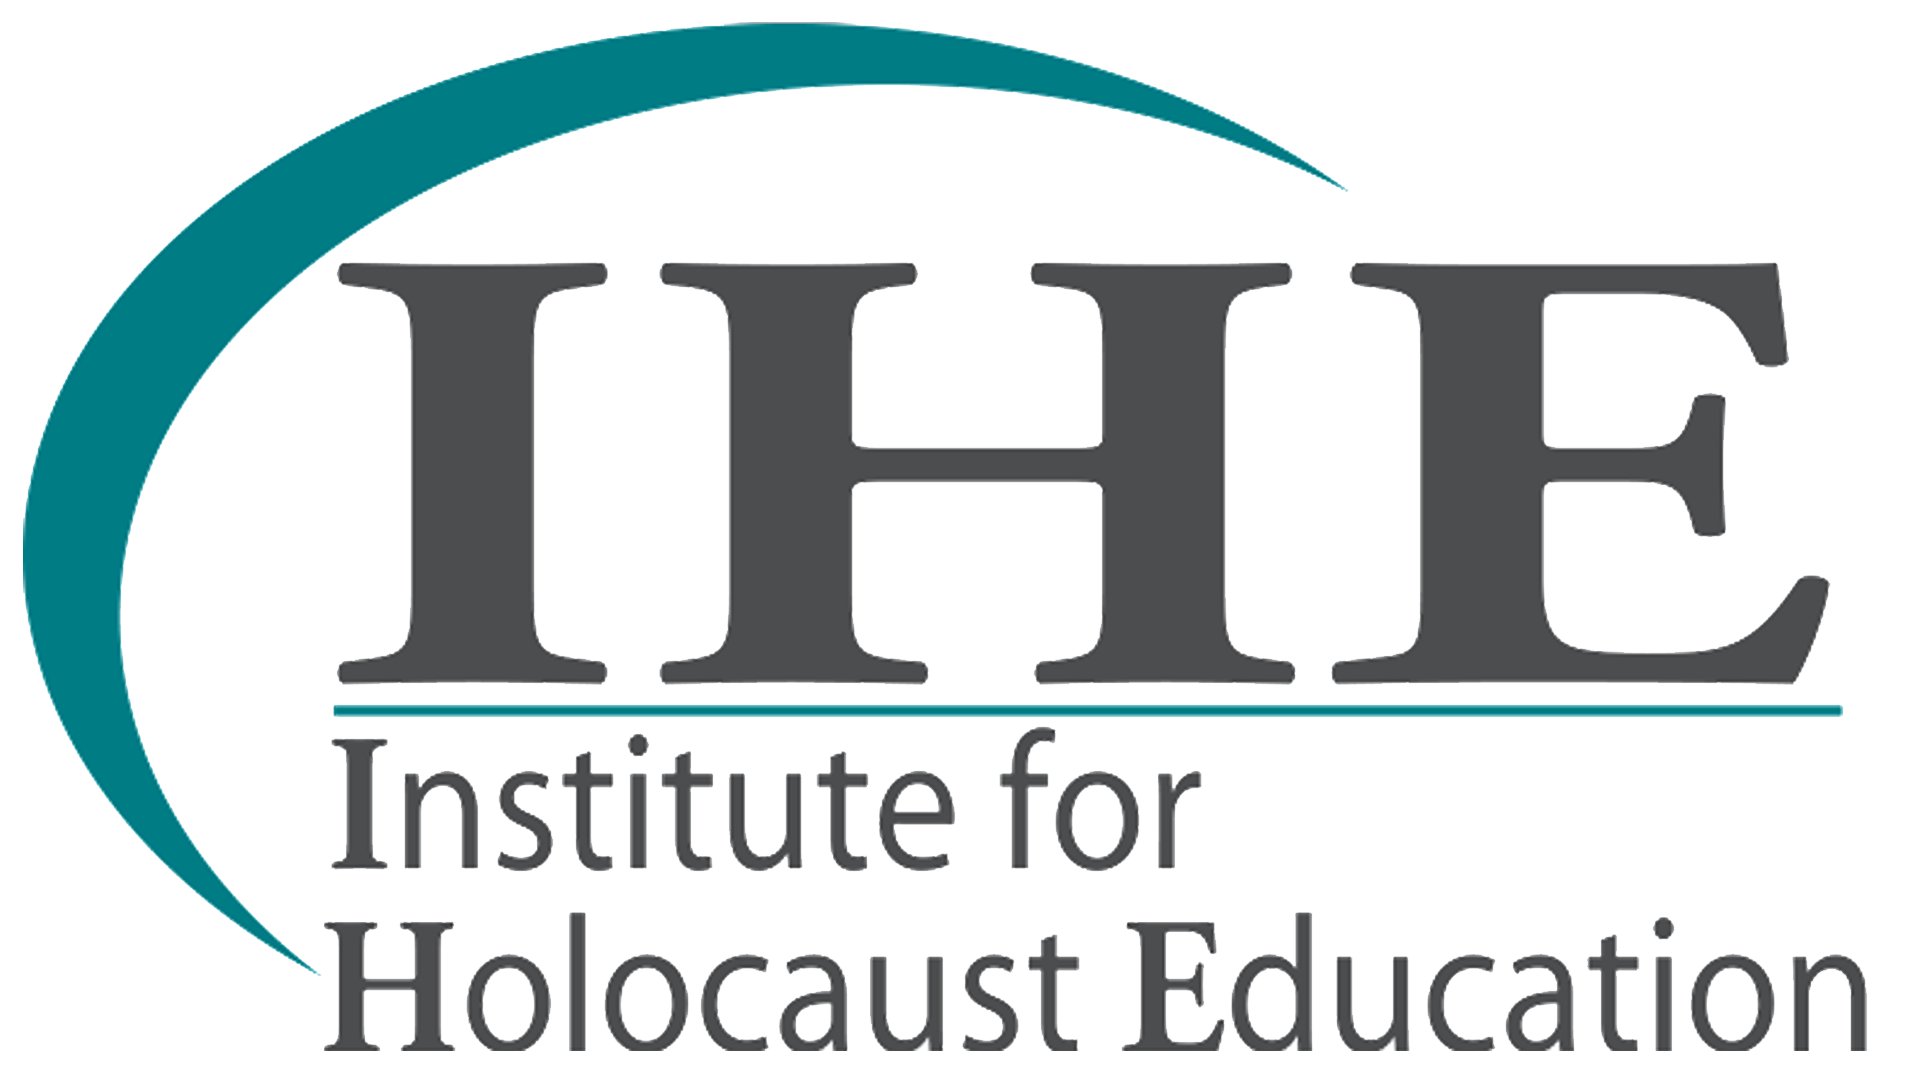 Welcome to the IHE - The Institute for Holocaust Education strives to provide quality Holocaust education programming across Nebraska and beyond. We offer resources and training for educators, as well as events for students and the general public.